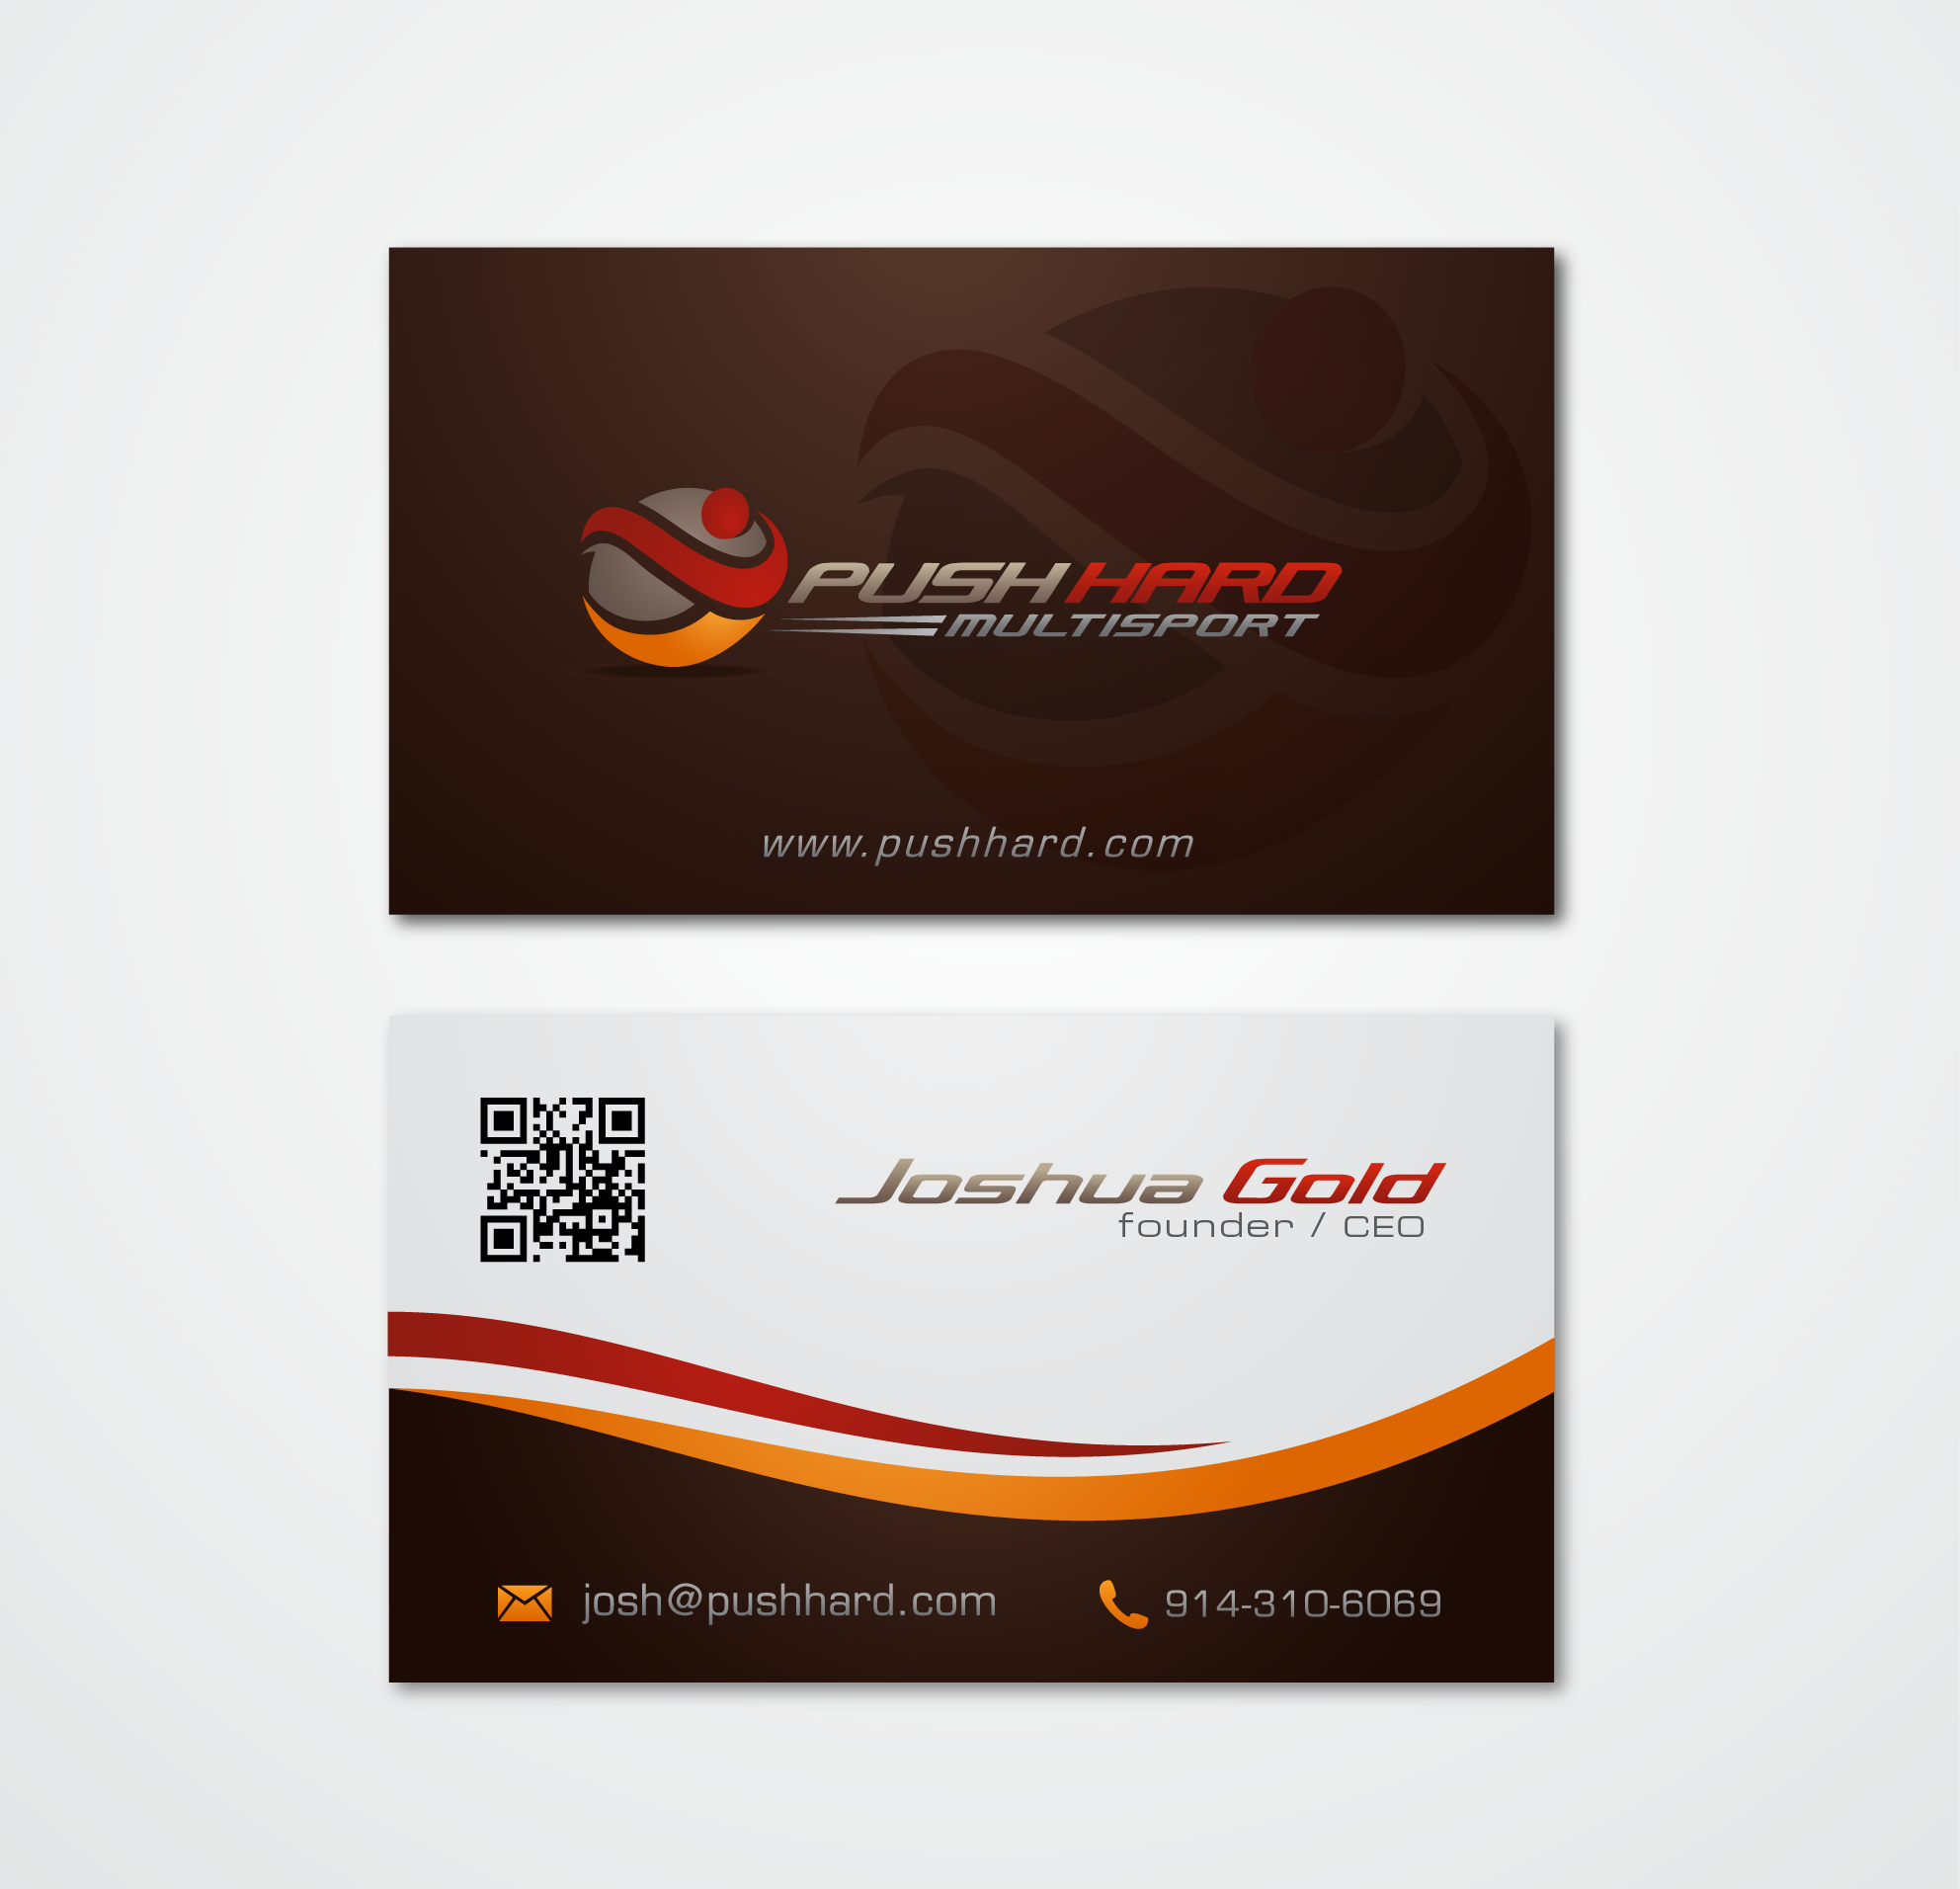 Push Hard Multisport needs a new logo and business card